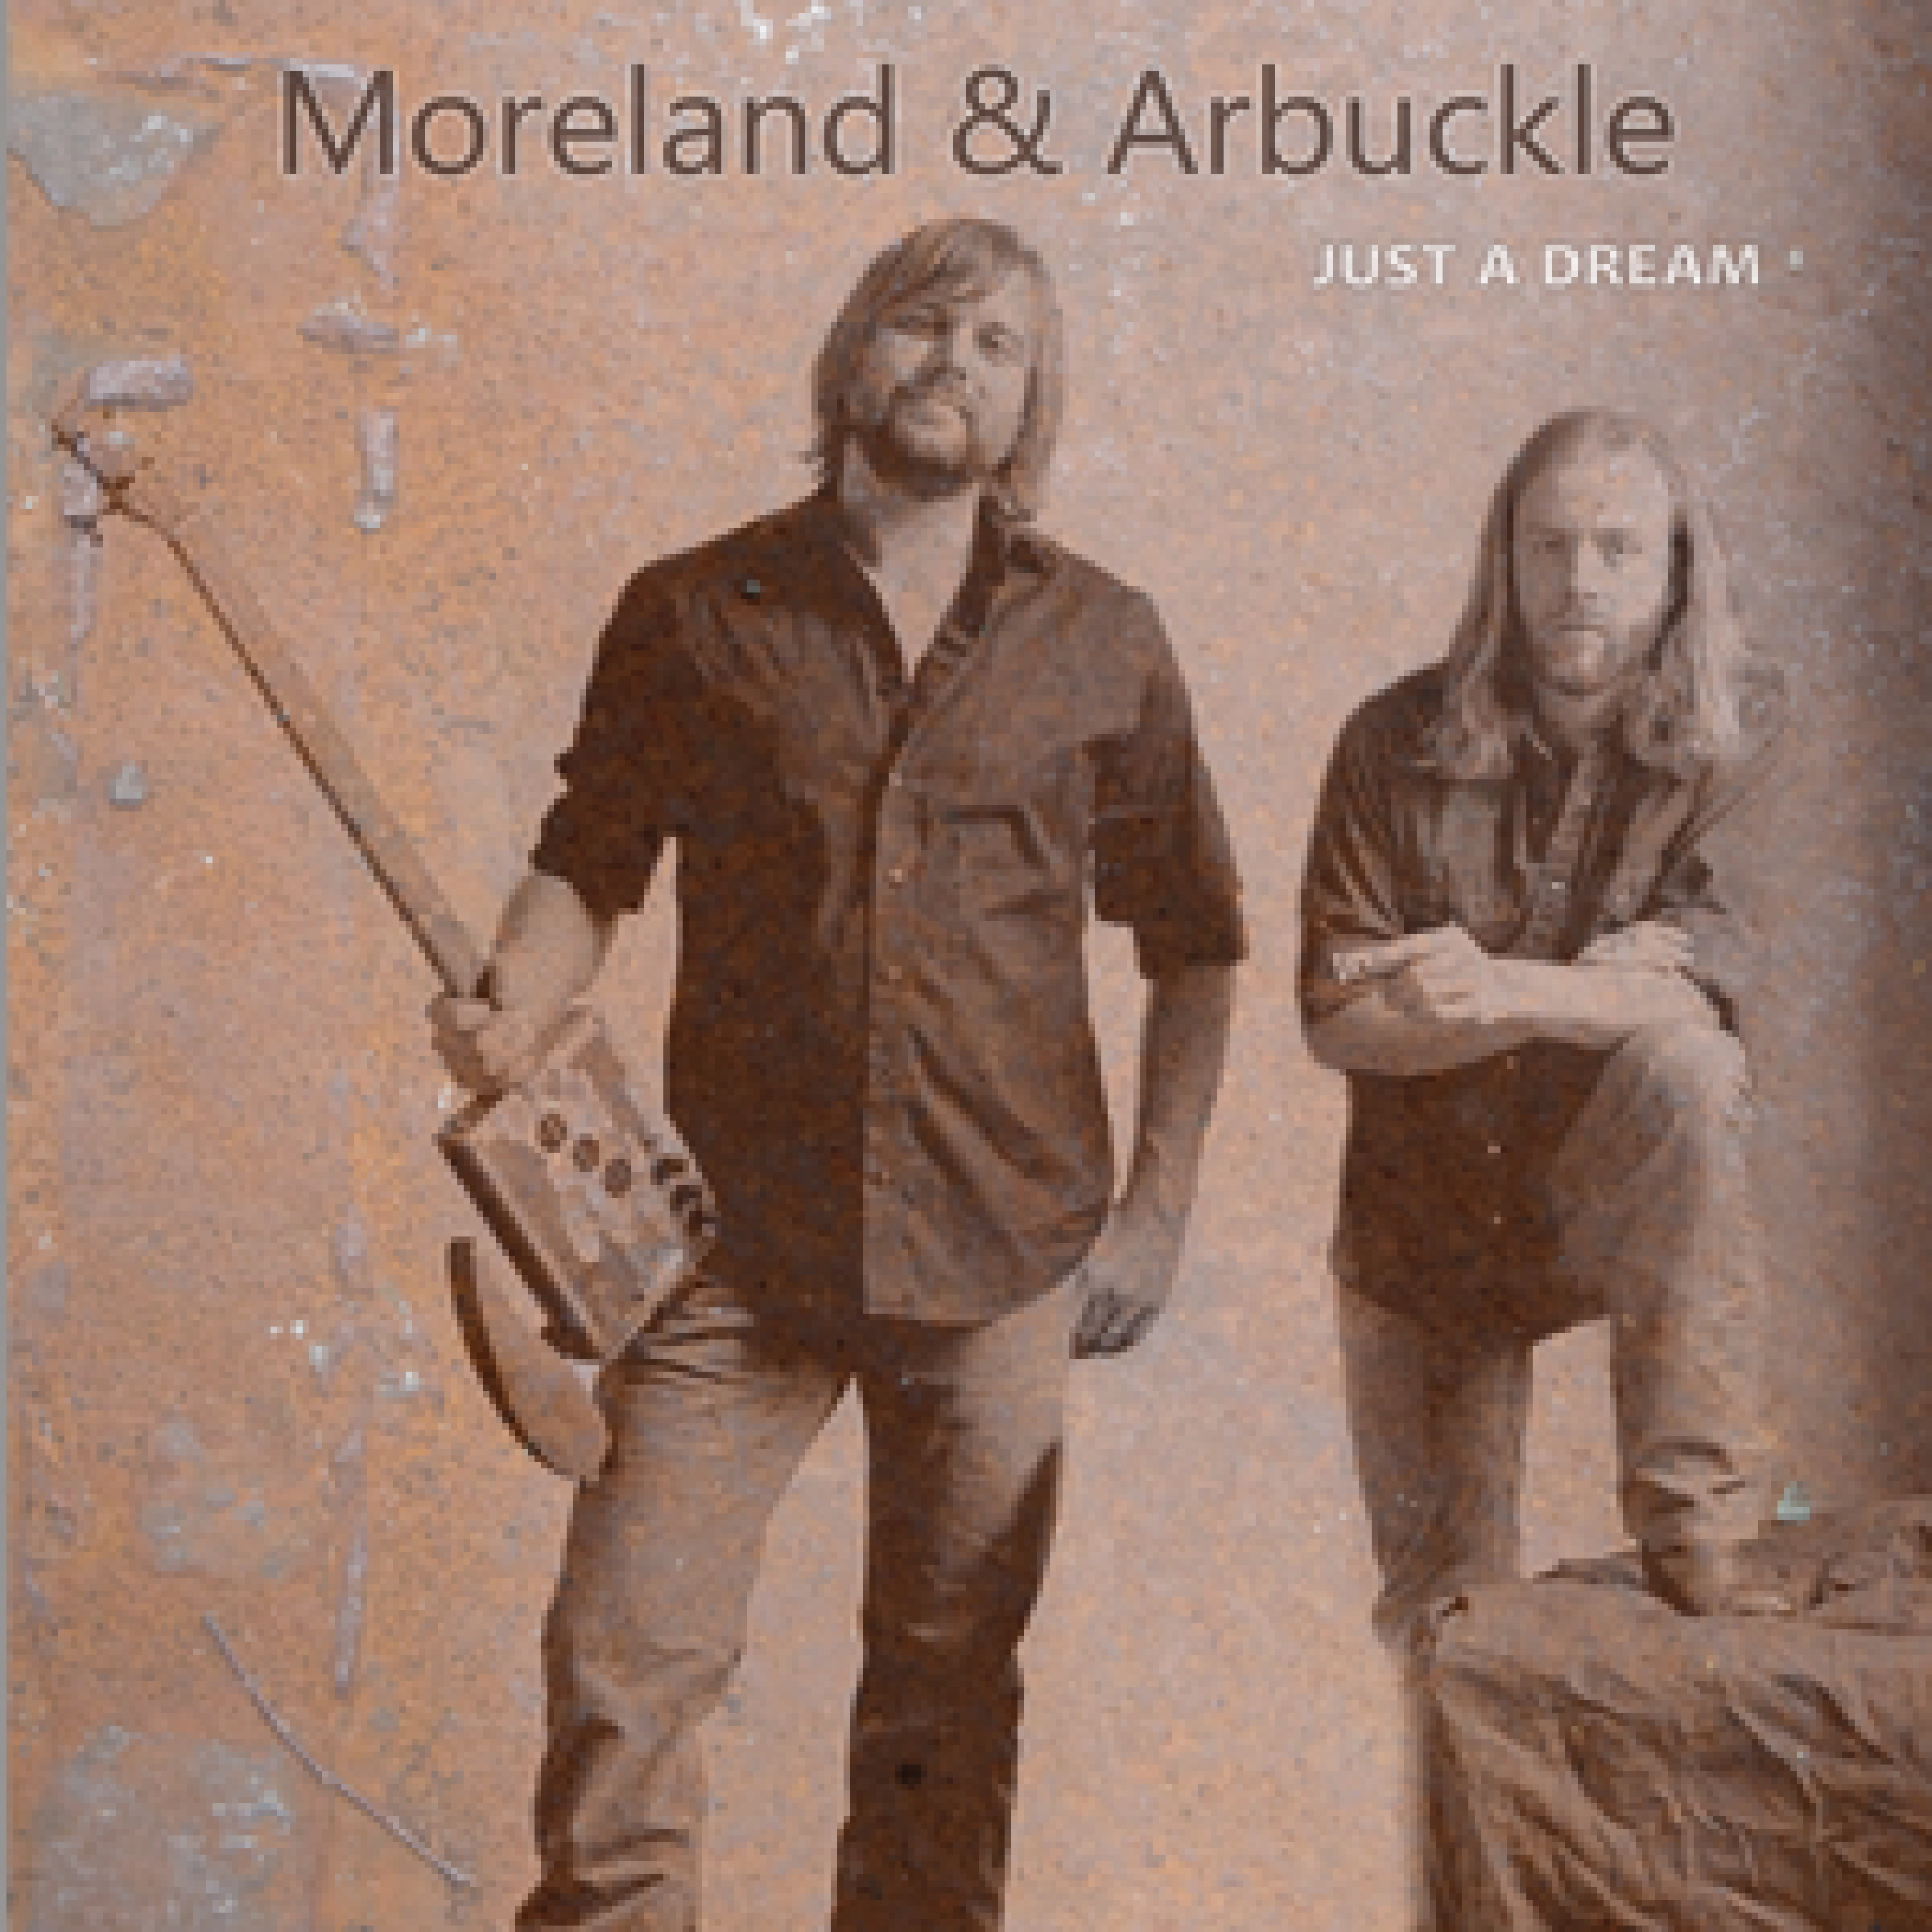 Moreland & Arbuckle - The Brown Bomber